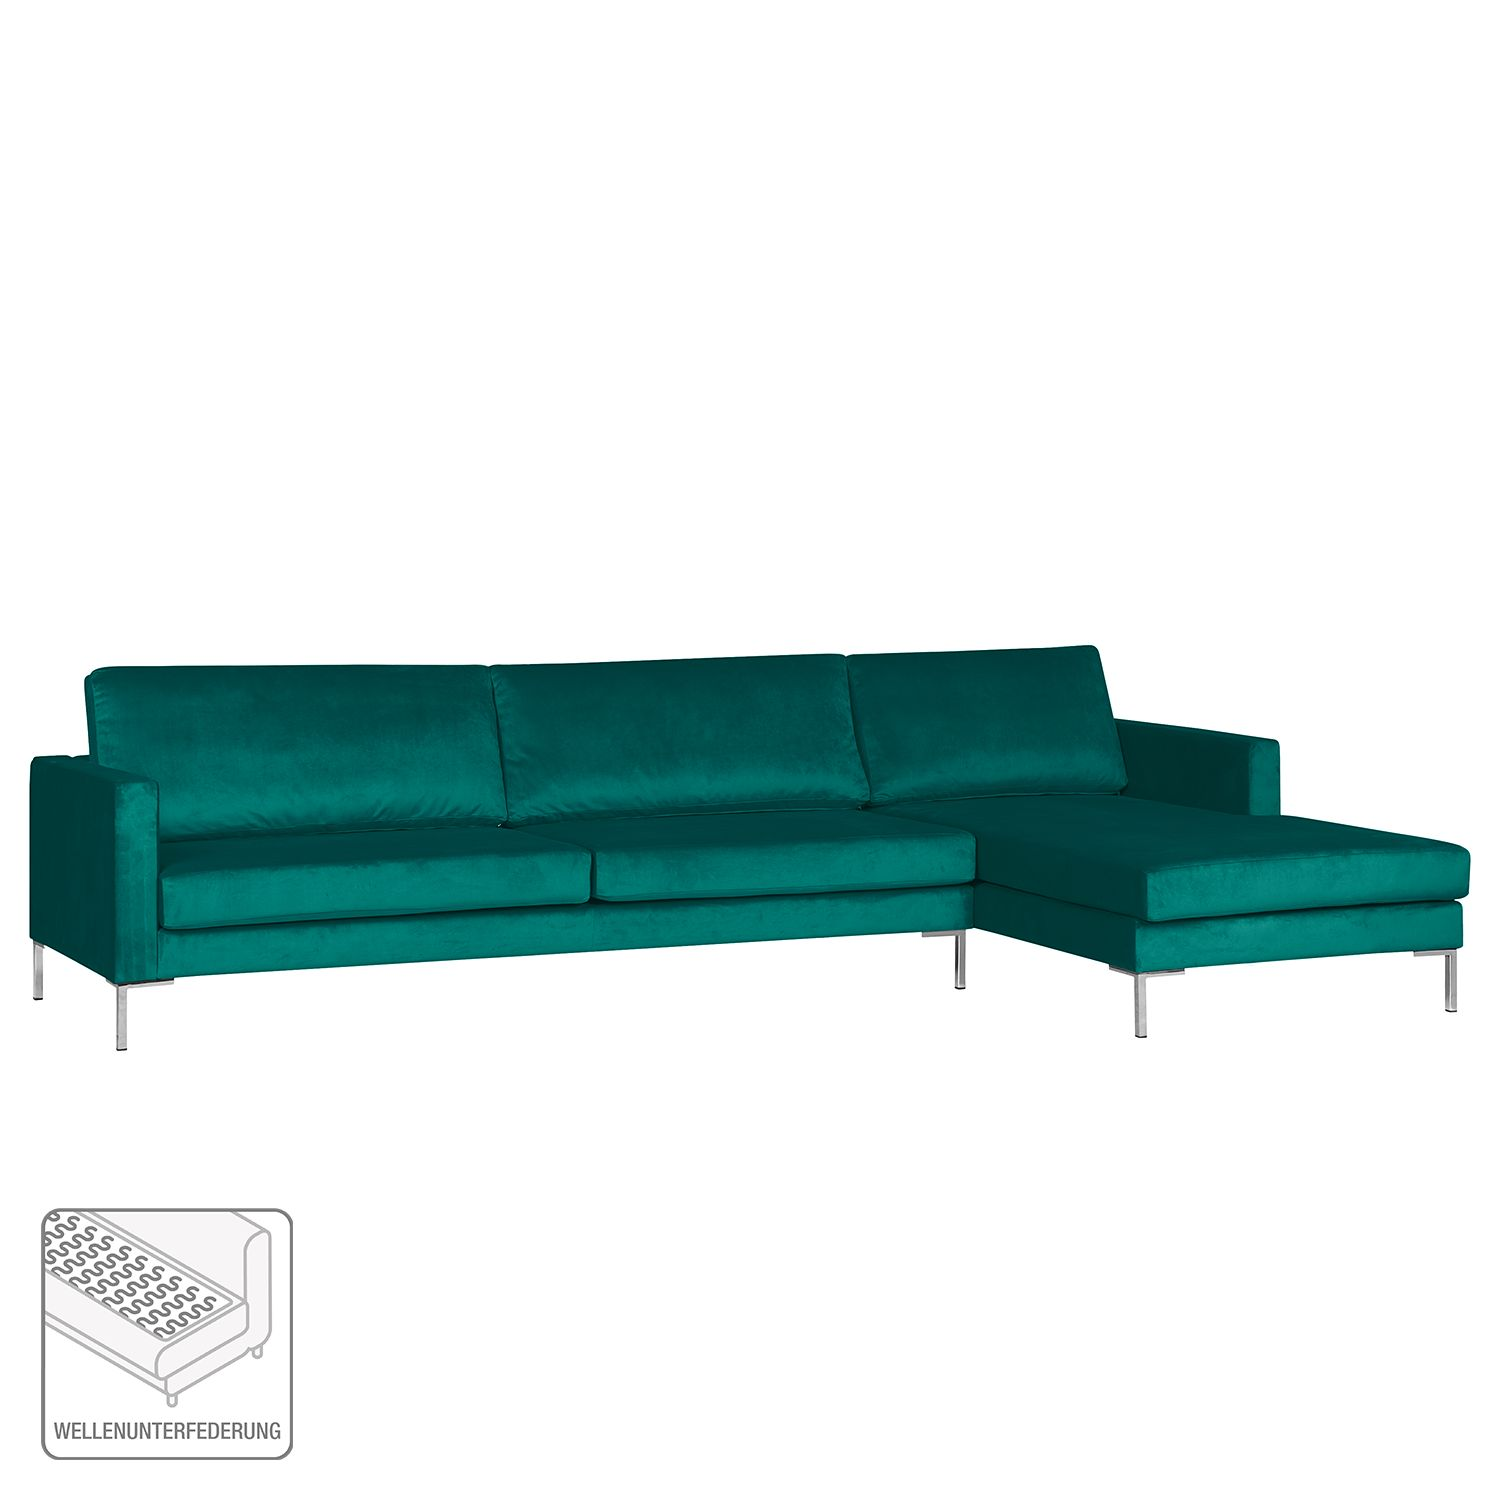 Ecksofa Clintwood Ecksofa Portobello Iii Samt Home24 At